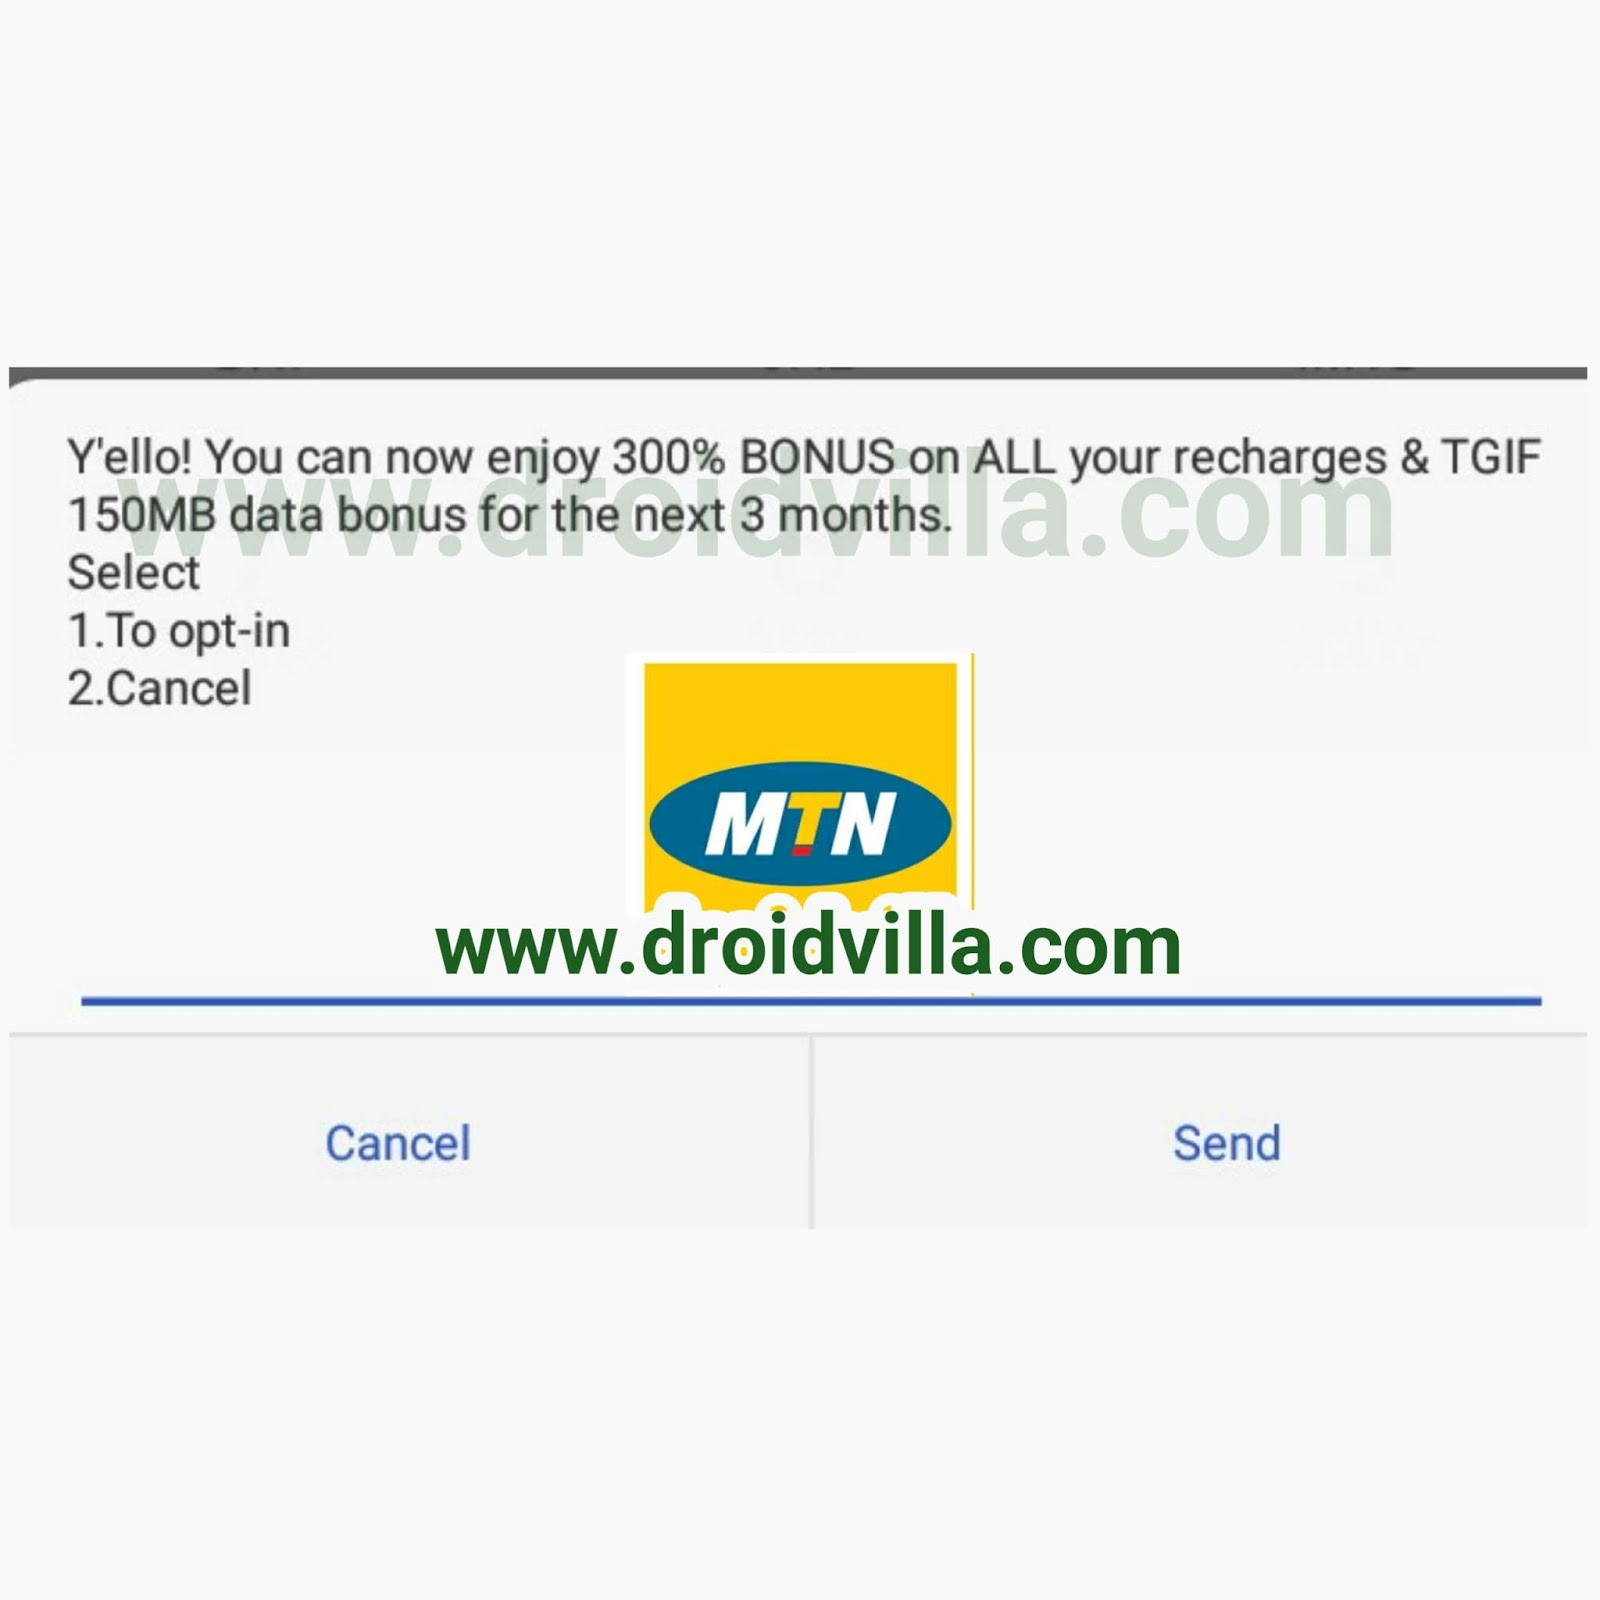 Activate MTN 300% Bonus + 150MB On All Recharge: New offer